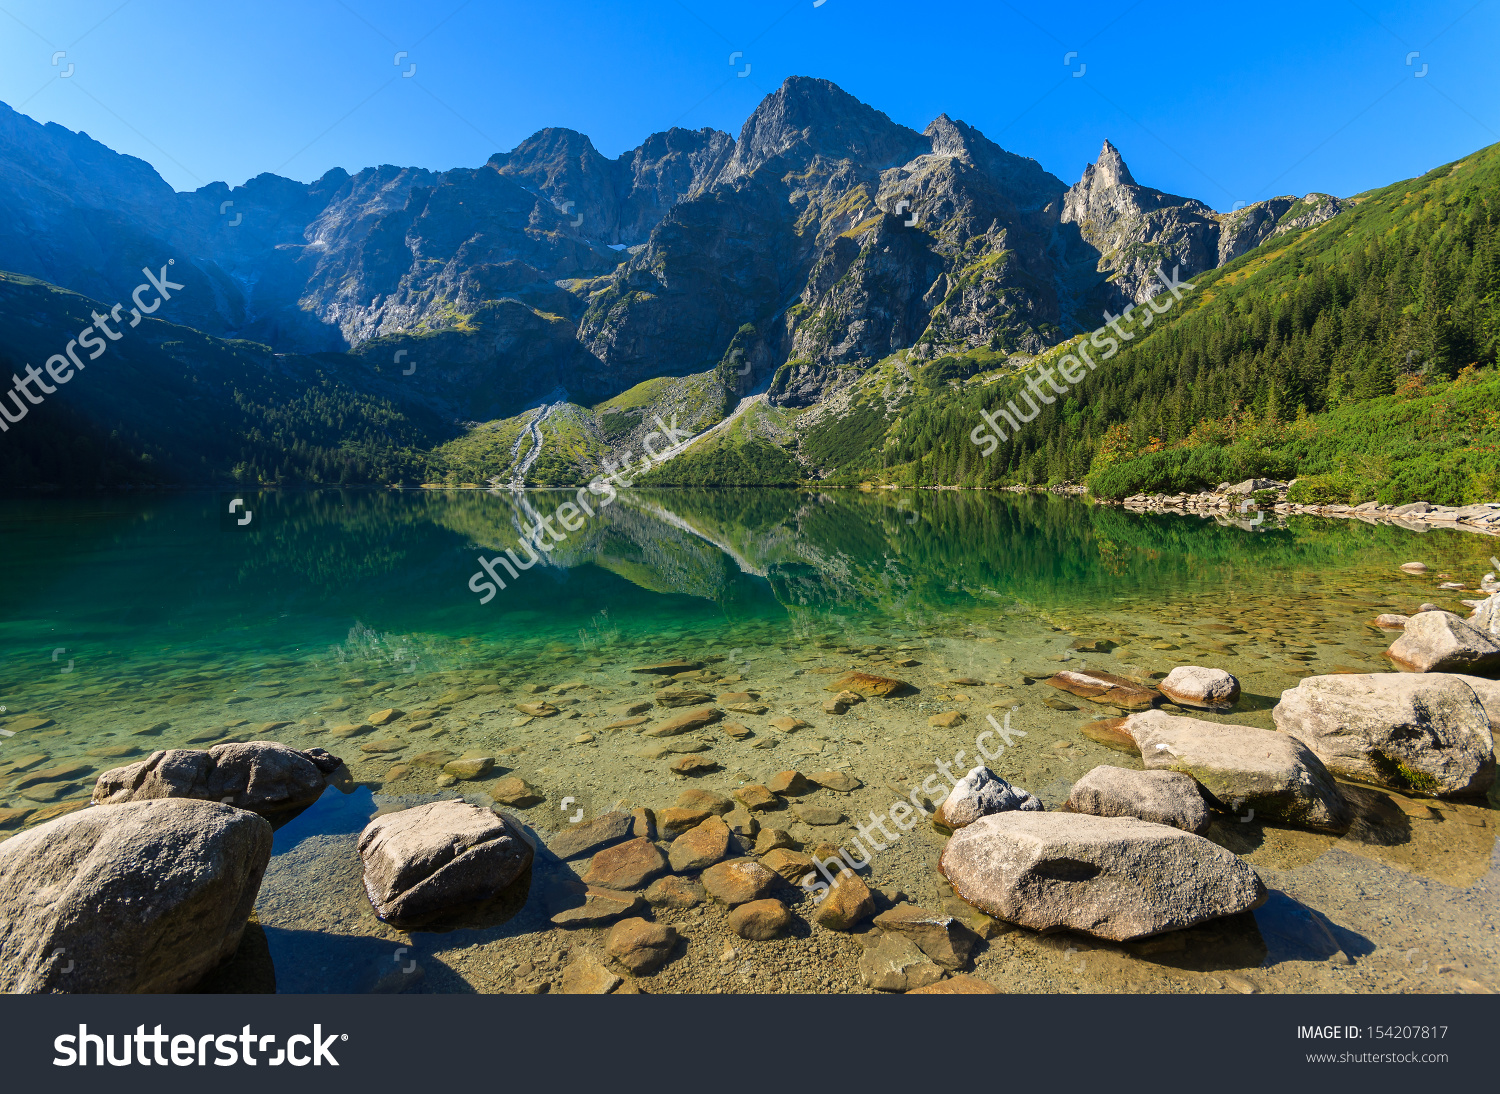 Beautiful Morskie Oko Green Water Alpine Stock Photo 154207817.